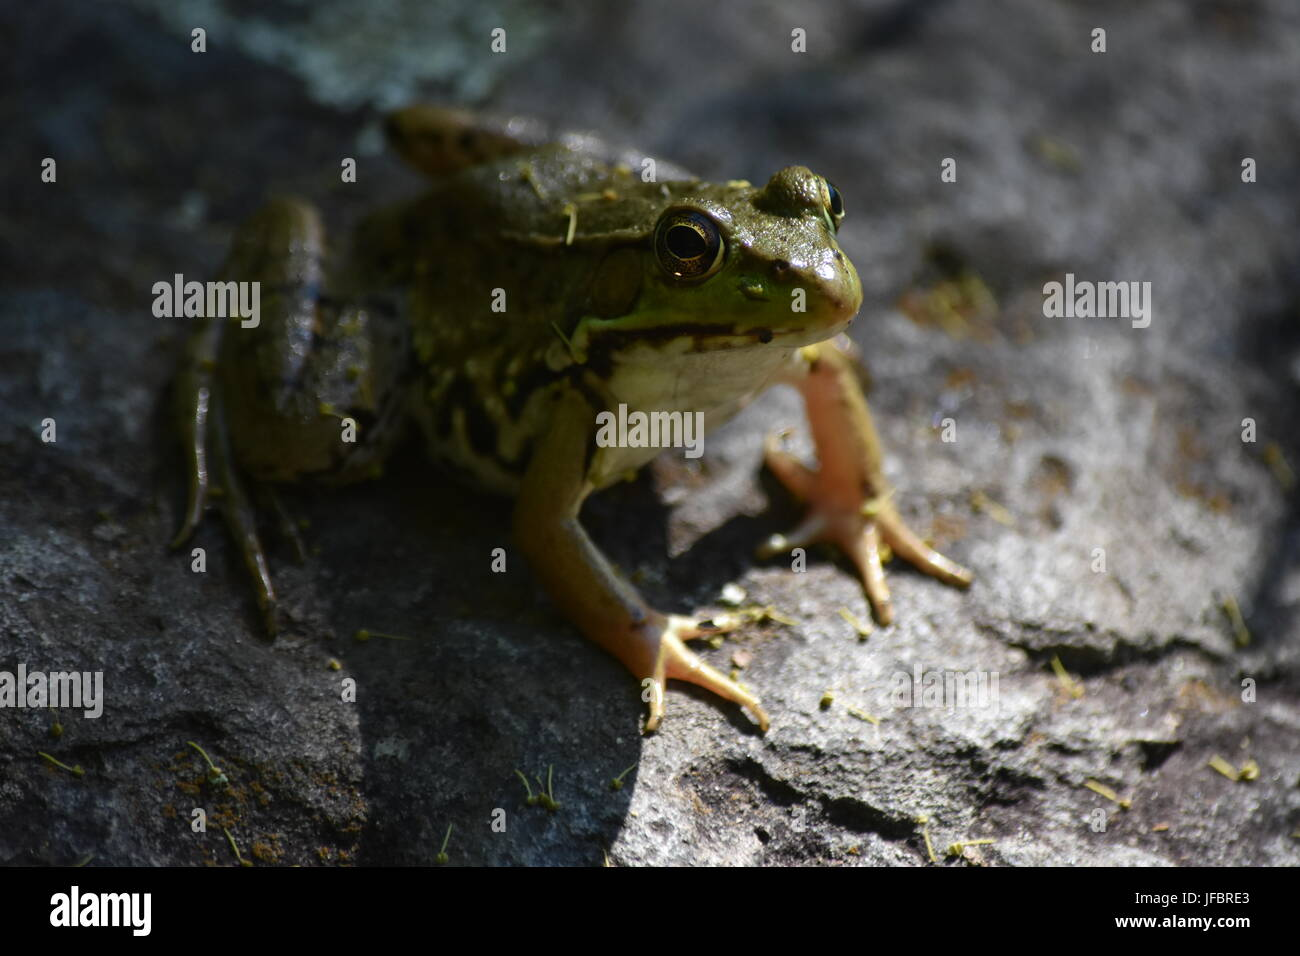 Green frog perched on rock - Stock Image